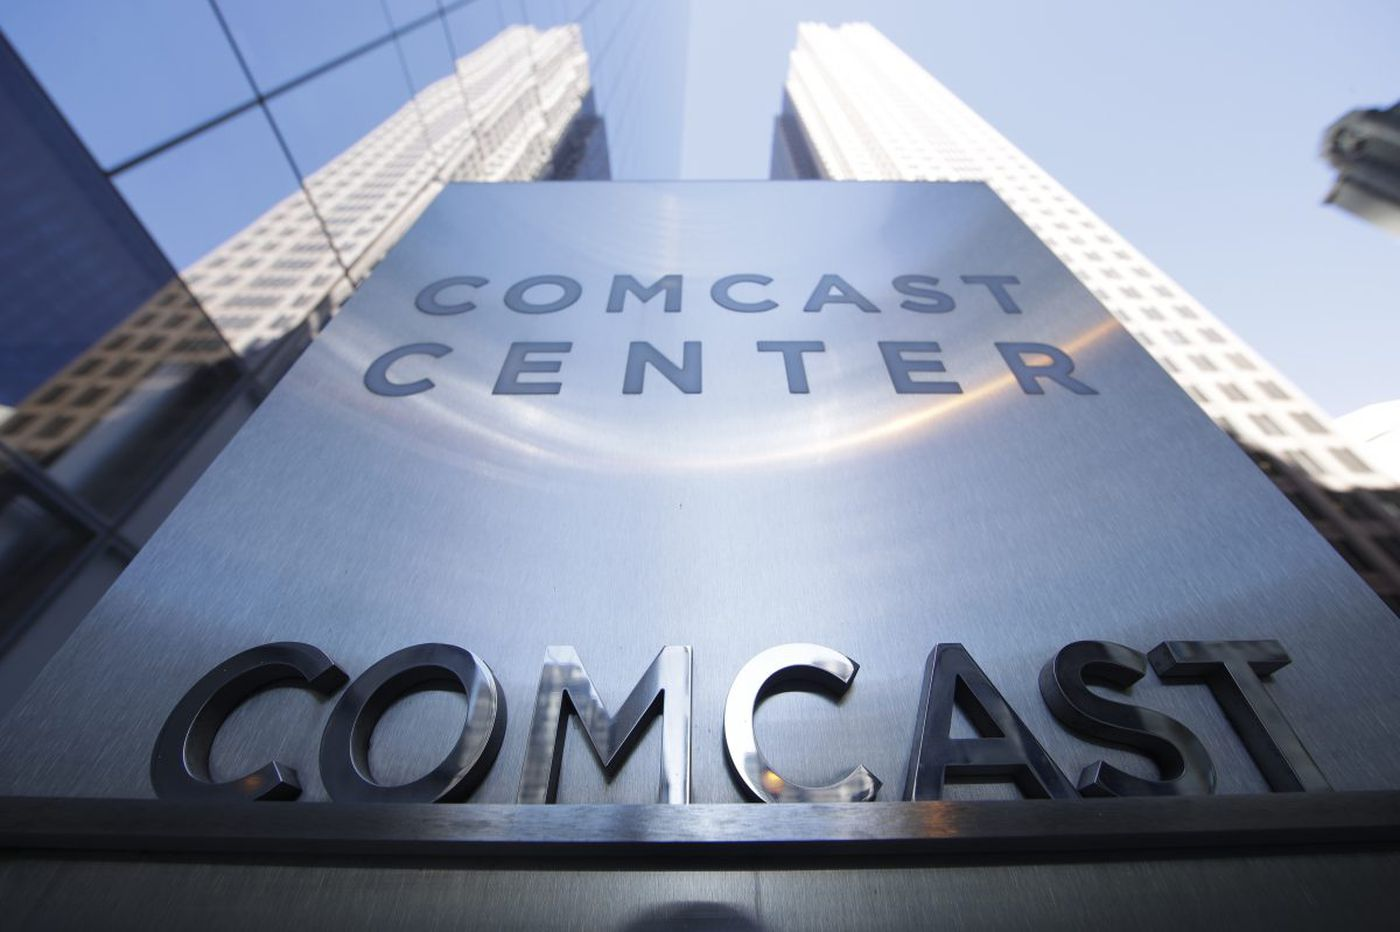 Comcast agrees to pay $295,000 to settle pay discrimination allegations